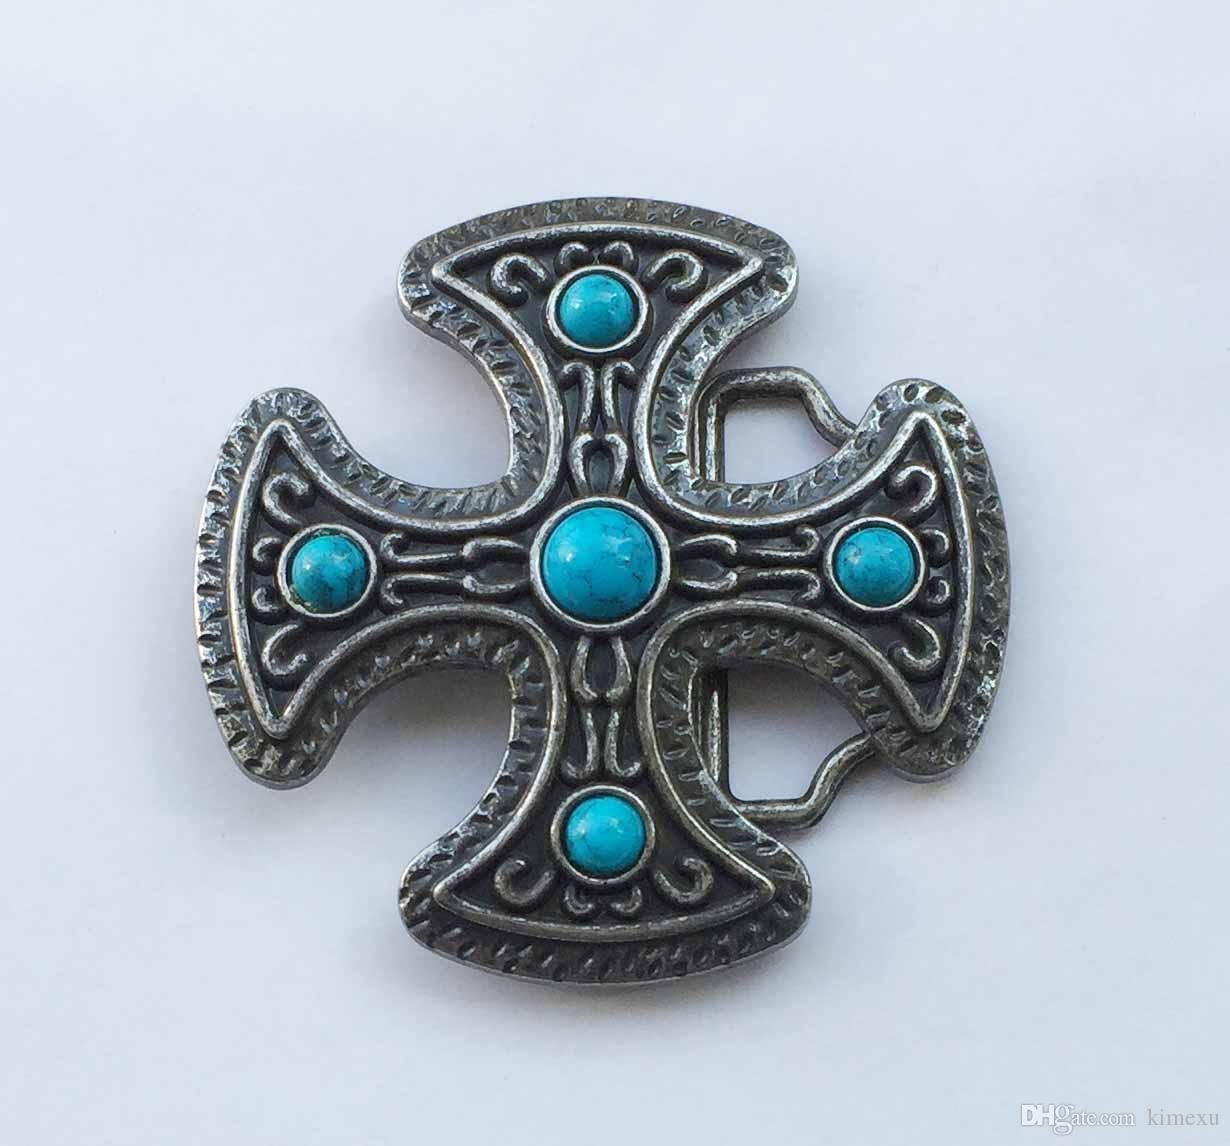 Cross belt buckle religious Belt Buckle with pewter finish SW-BY0178 suitable for 4cm wideth belt with continous stock